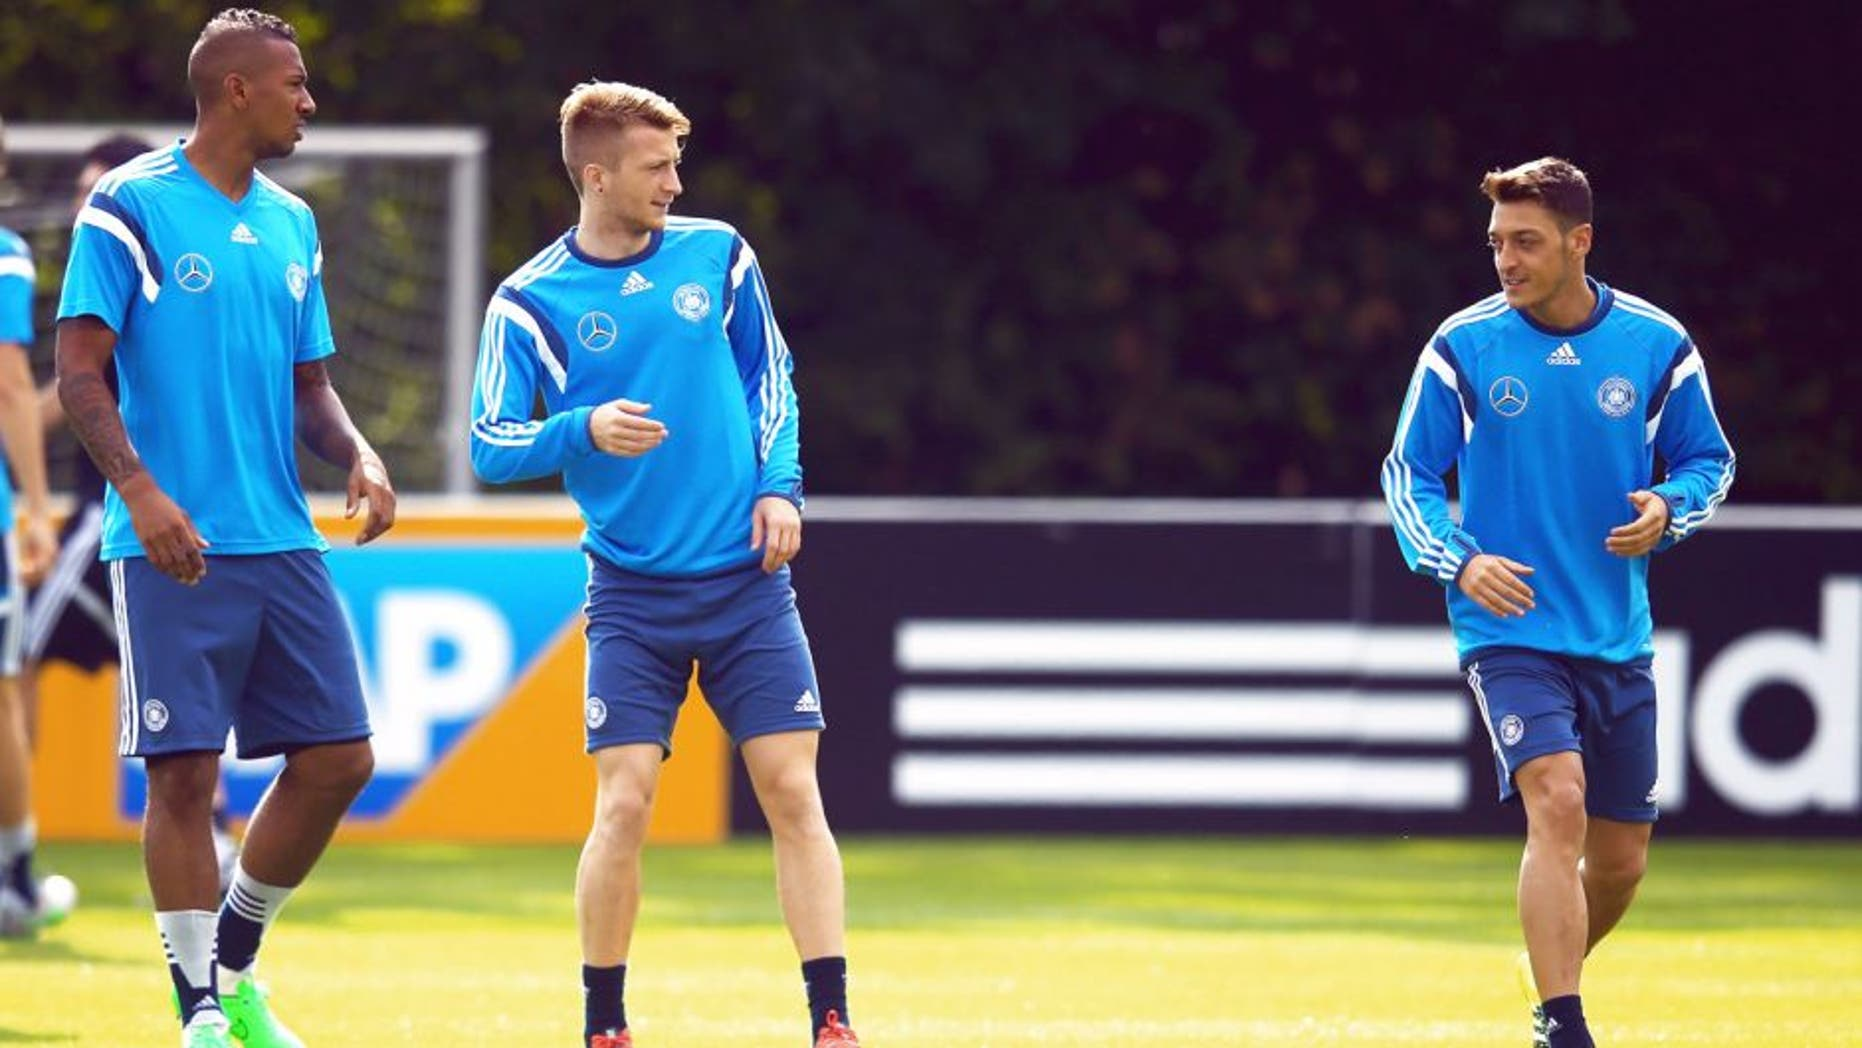 FRANKFURT AM MAIN, GERMANY - SEPTEMBER 02: Jerome Boateng, Marco Reus and Mesut Oezil (L-R) attend a Germany training session at 'Kleine Kampfbahn' training ground on September 2, 2015 in Frankfurt am Main, Germany. (Photo by Alex Grimm/Bongarts/Getty Images)